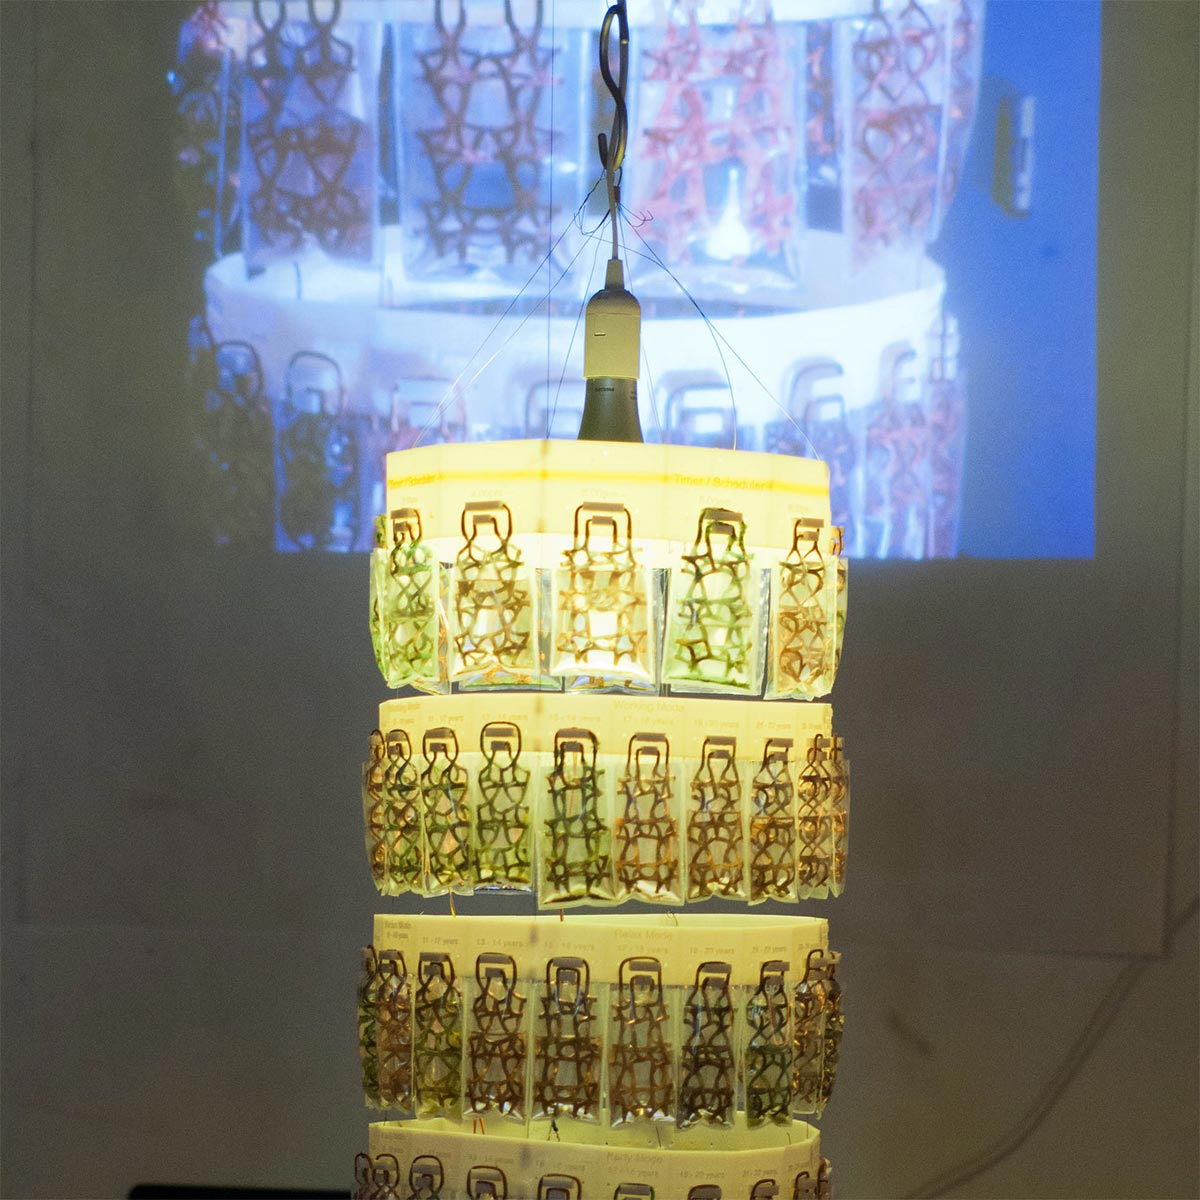 a lamp with several layers of designs